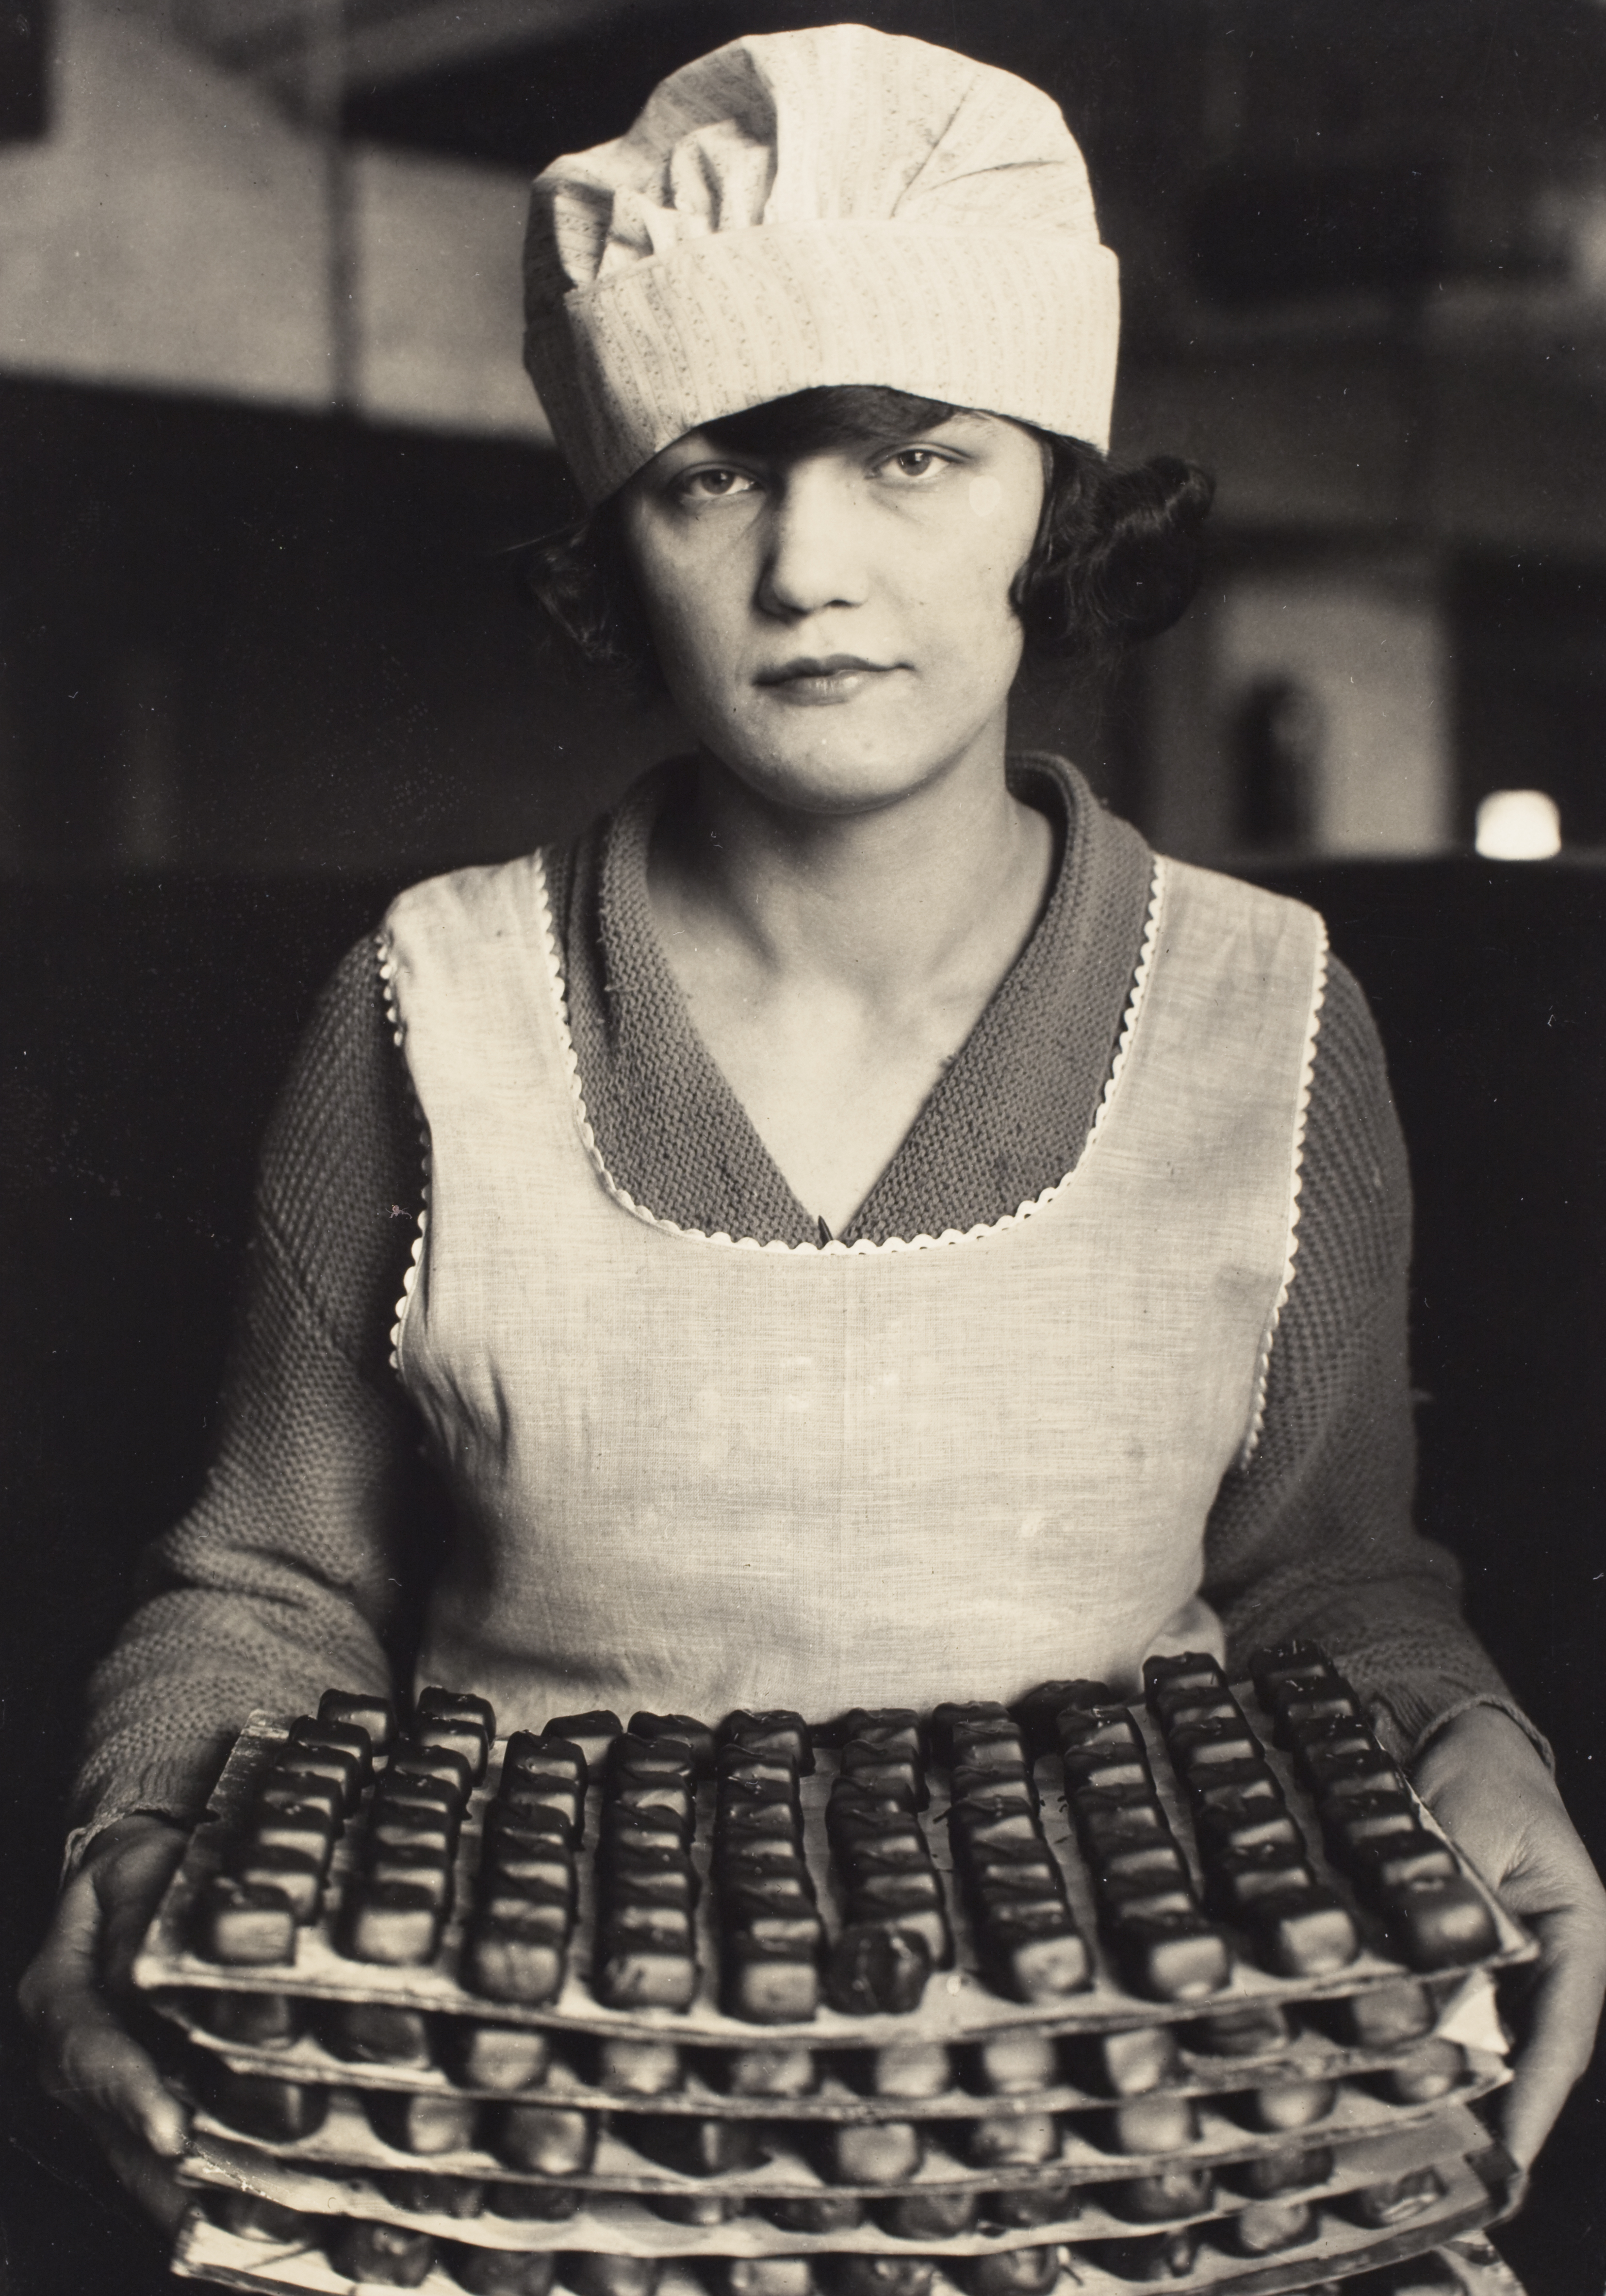 Candy worker, c. 1925. Photograph by Lewis W. Hine. Courtesy George Eastman House.